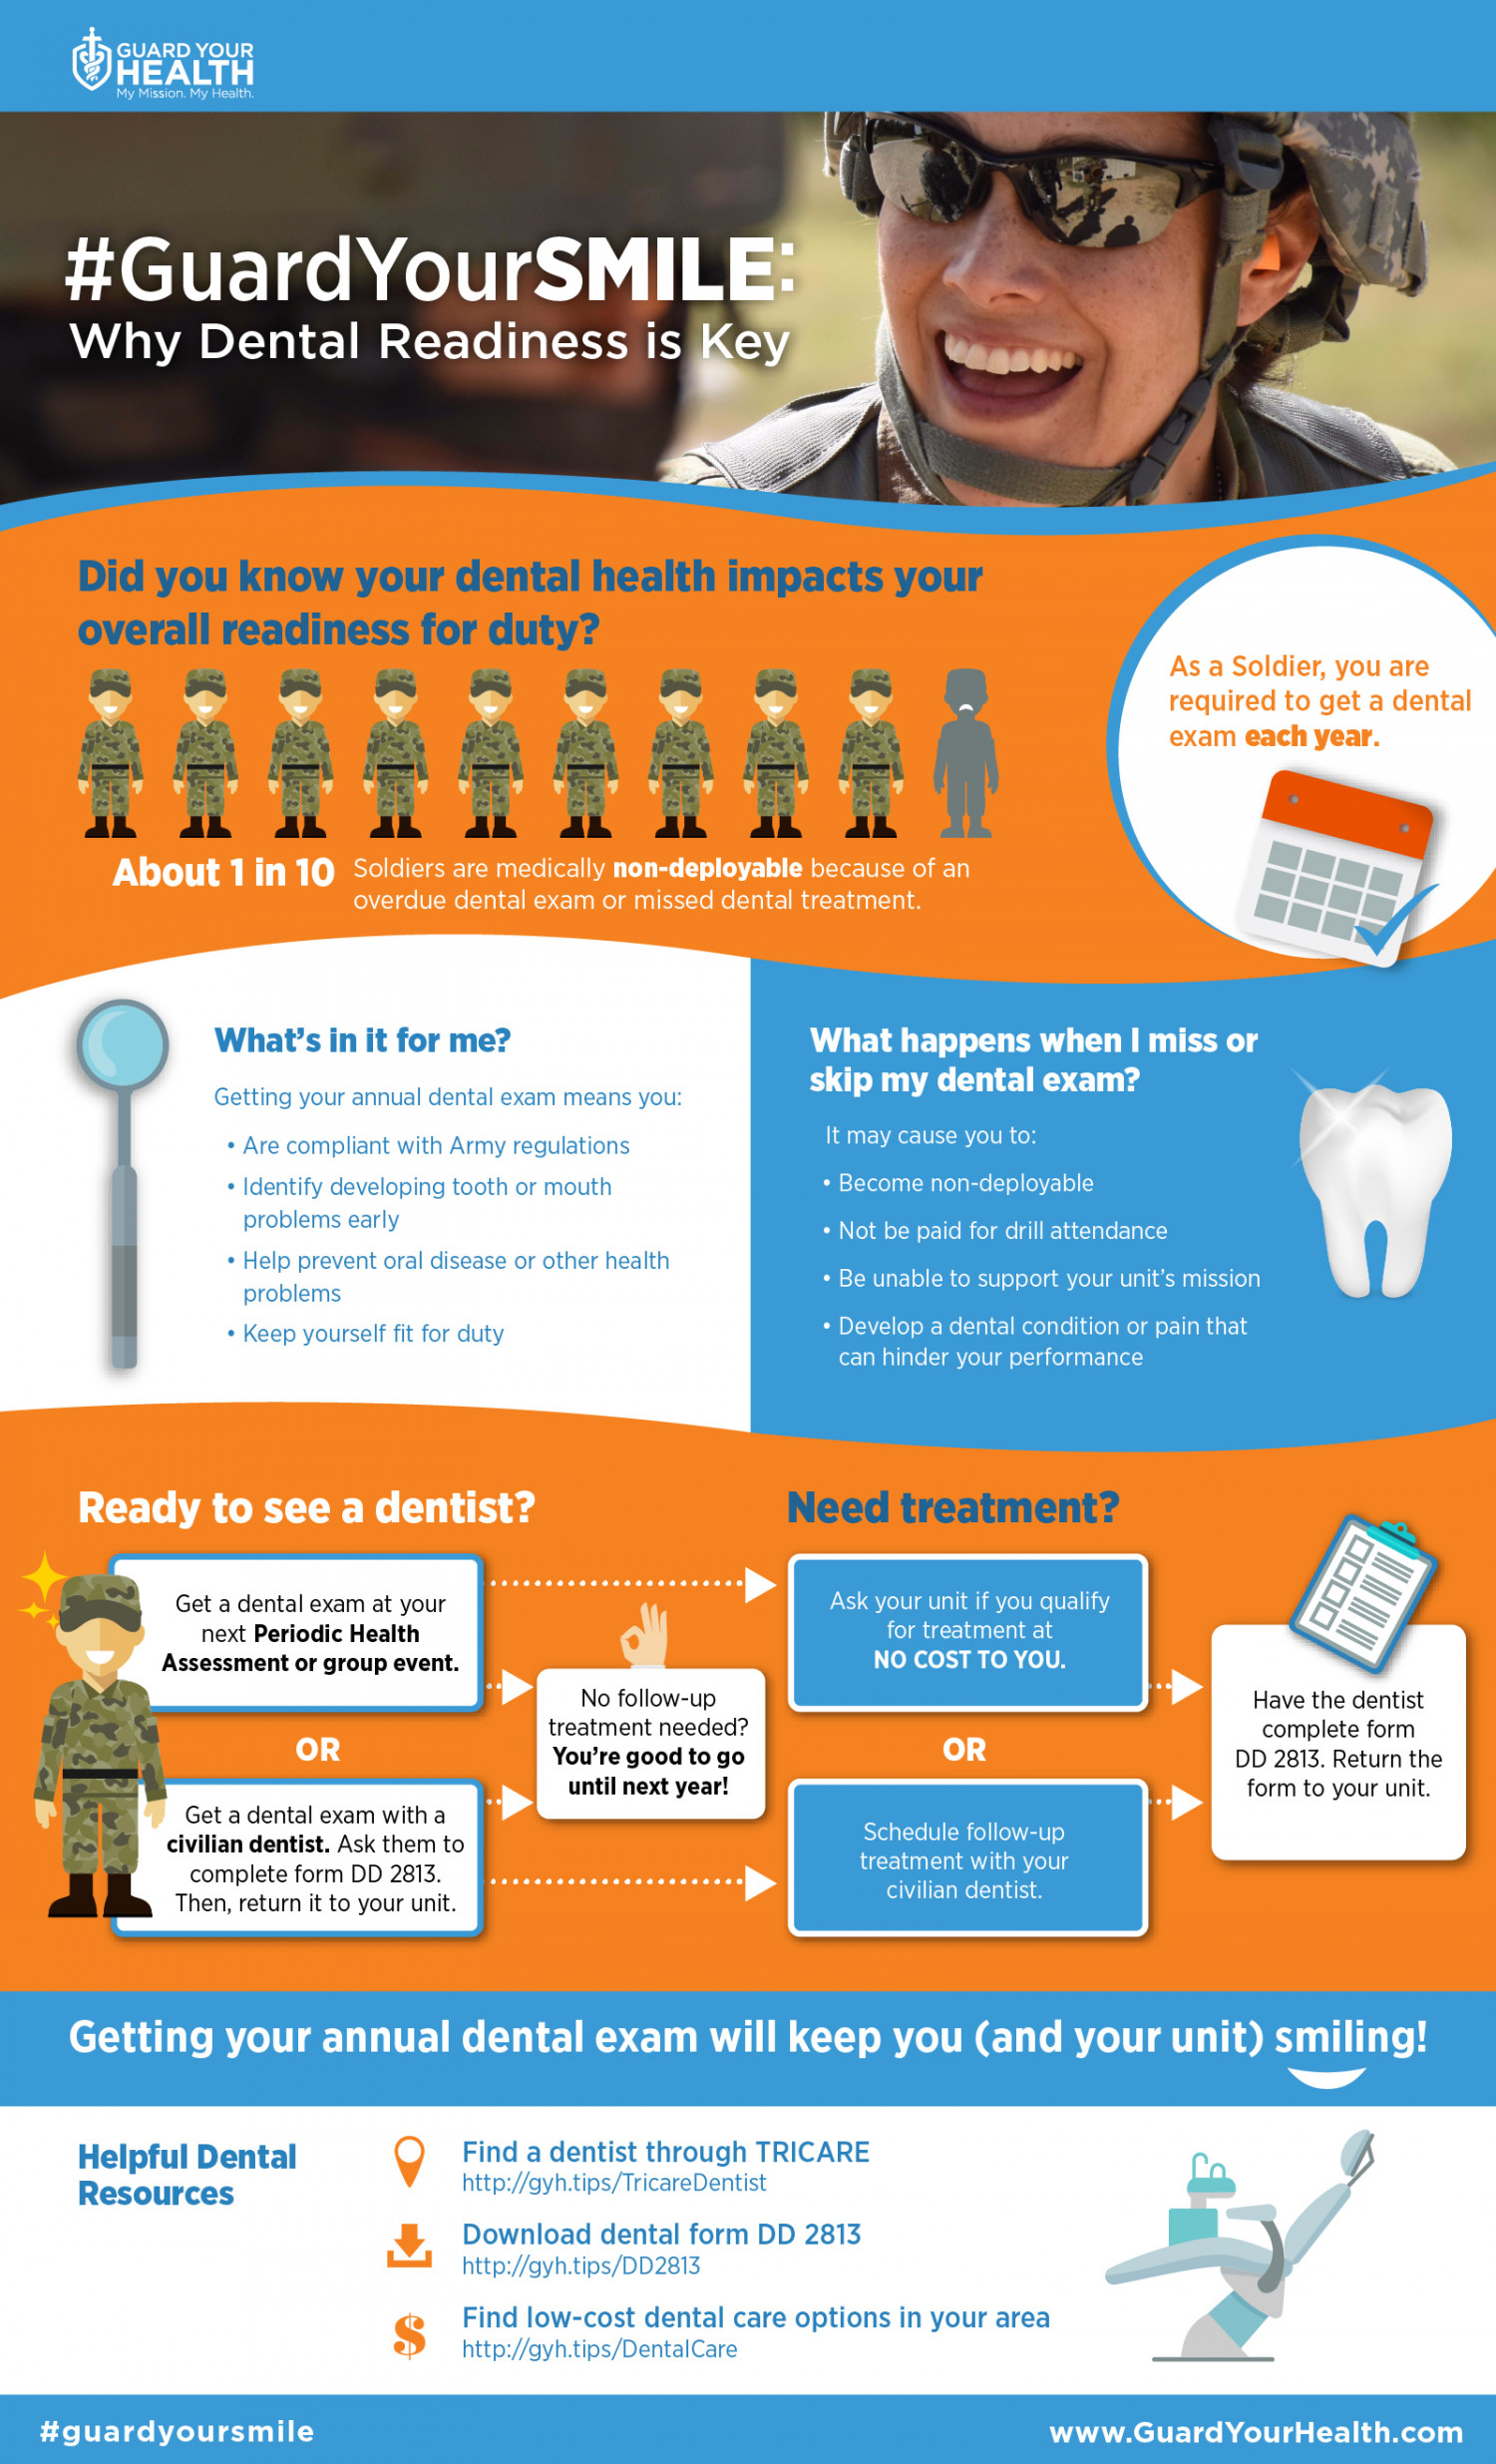 Guard Your Smile: Why Dental Readiness is Key Infographic